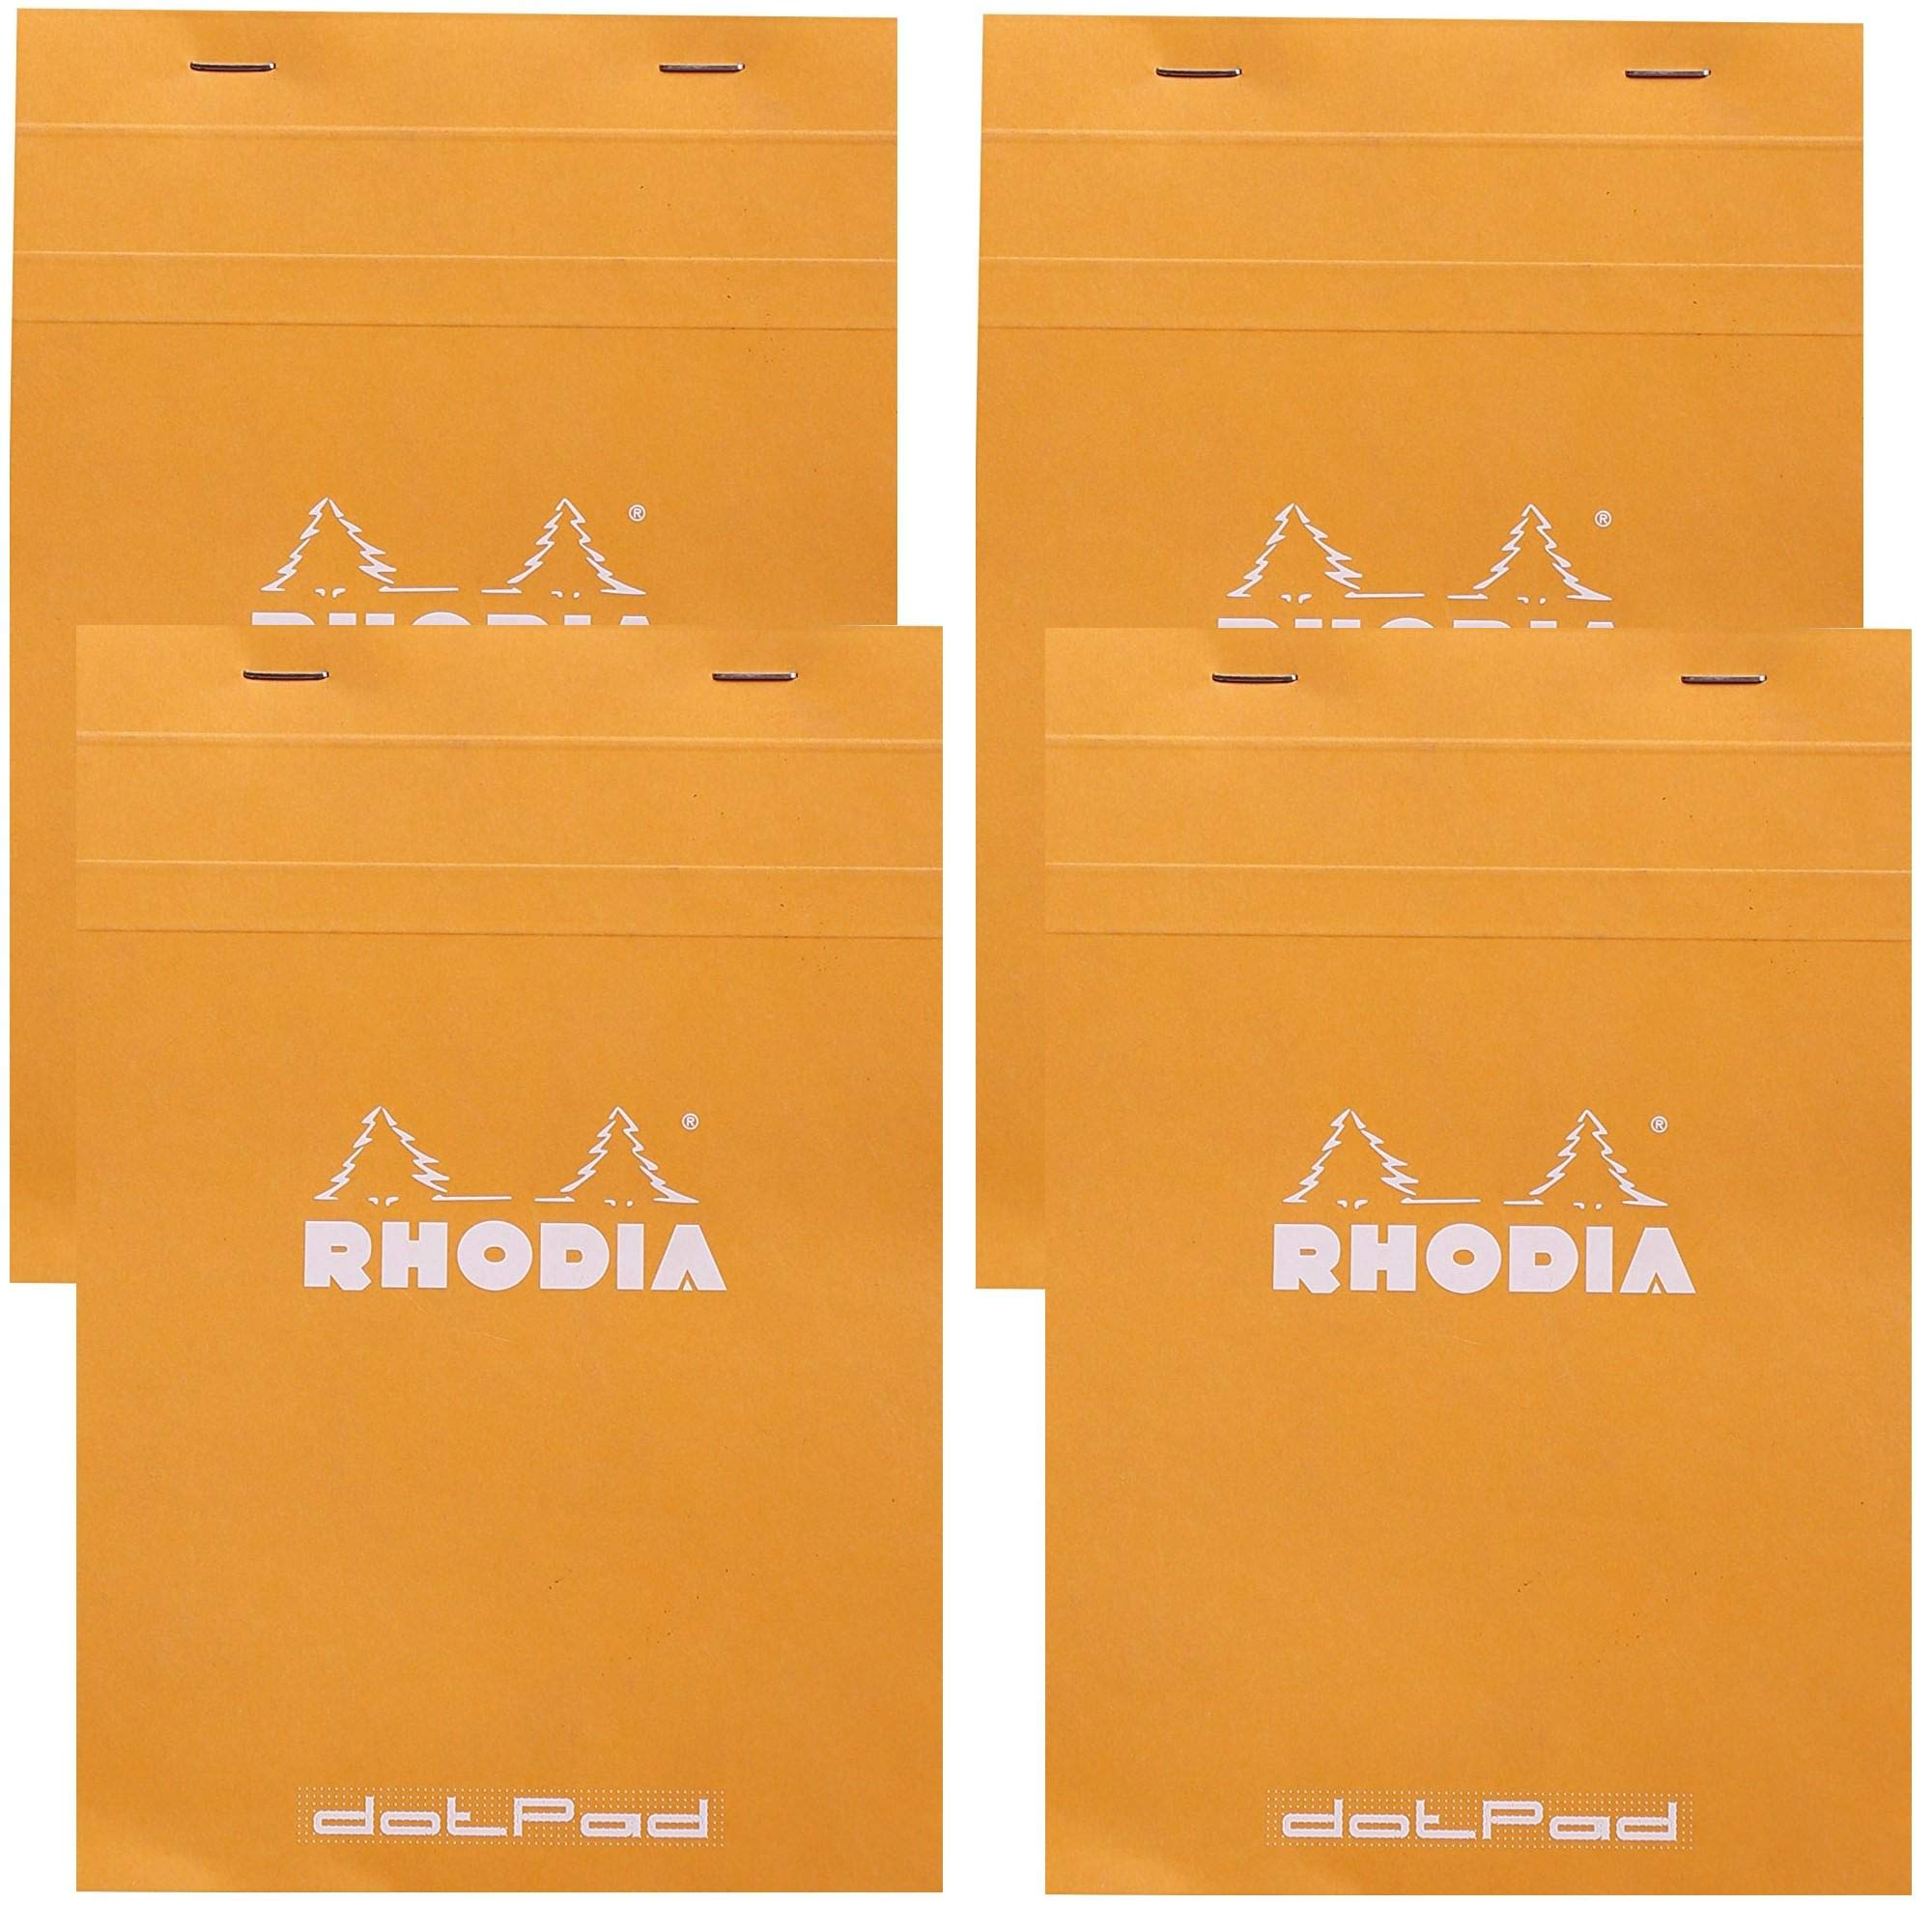 Rhodia Staplebound Notepad - Dot grid 80 sheets - 6 x 8 1/4 - Orange cover, Pack of 4